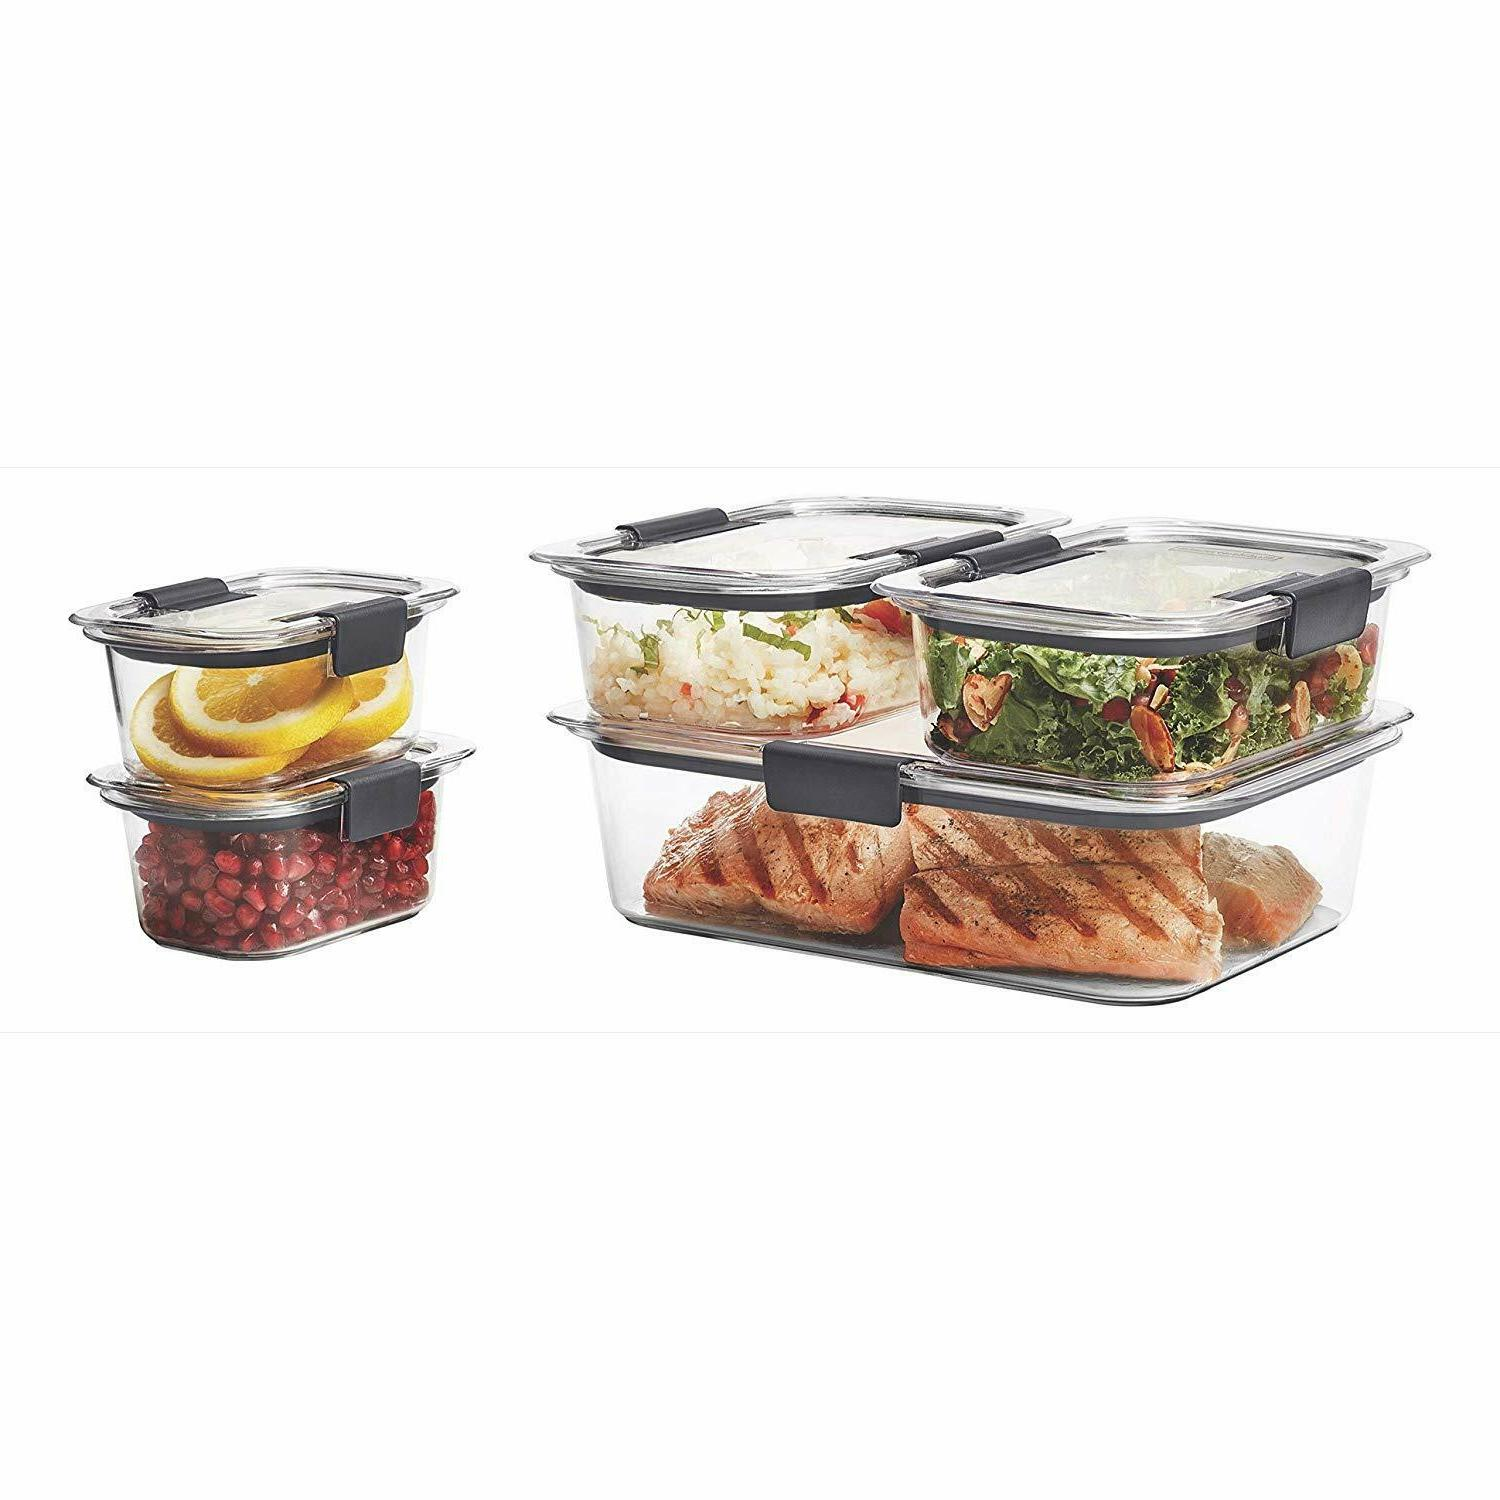 Rubbermaid Containers Airtight Lids BPA Free Of